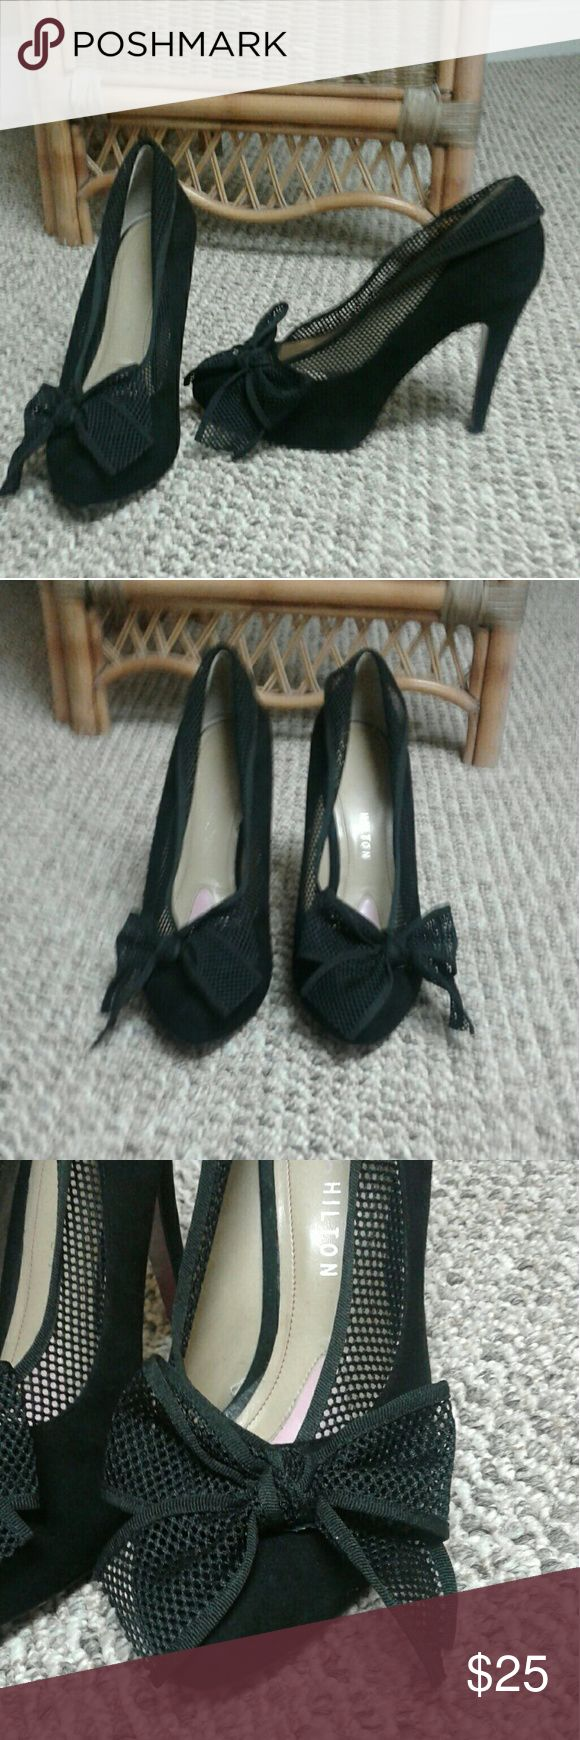 Paris Hilton Bow Heels Gently worn. Black suede heel with a mesh netted bow. Super sexy with a little black dress. There are some very teeny tiny marks on the heel and sole of the shoe. They are hardly noticeable but I tried my best to get pics so y'all knew what you were getting. Paris Hilton Shoes Heels